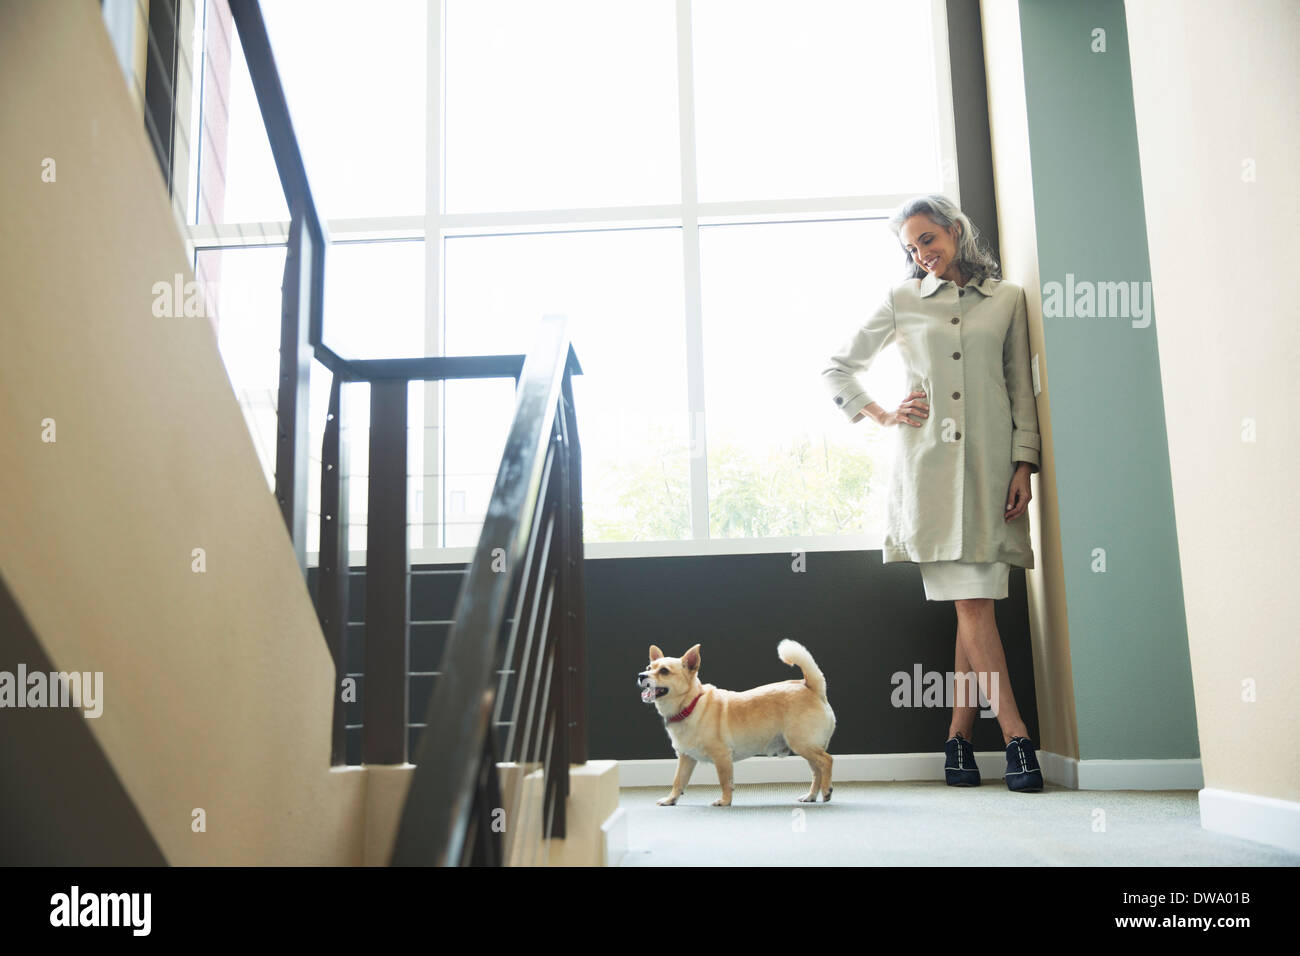 Mature woman and pet dog on stairwell Stock Photo